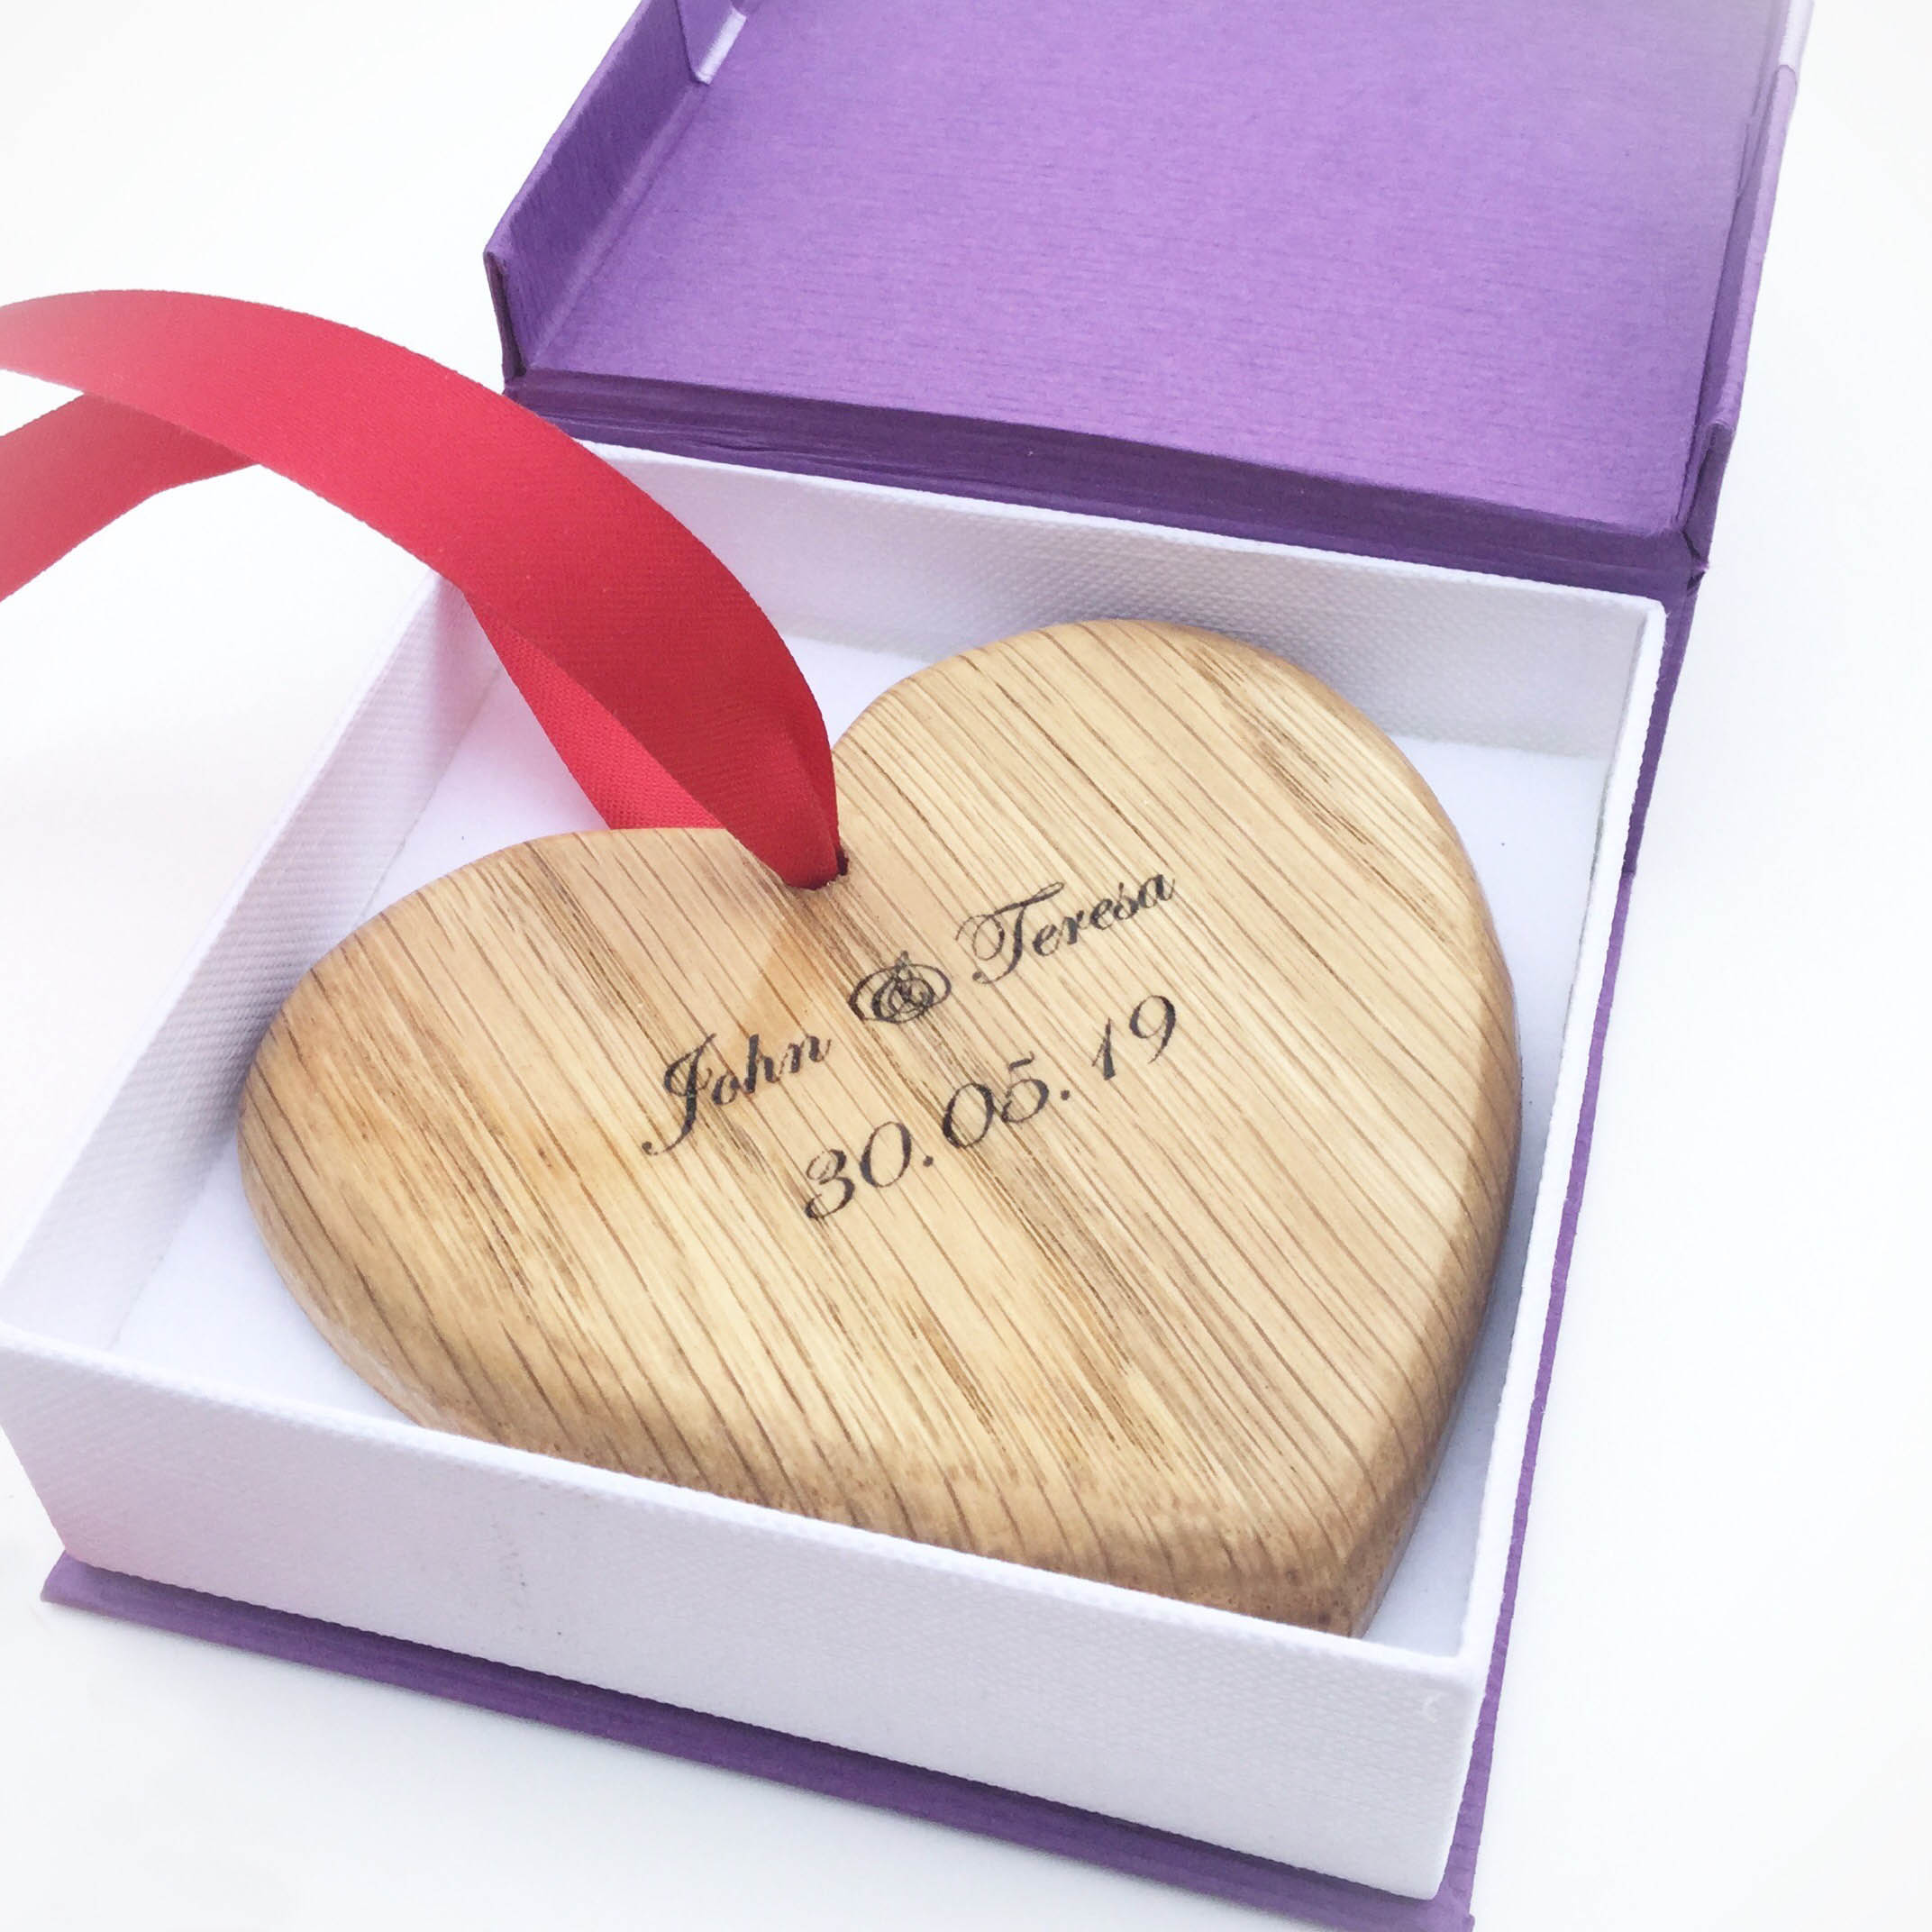 Unusual Wooden Gifts… - More wooden gifts, lovingly handcrafted to celebrate your 5th Wedding Anniversary or any occasion